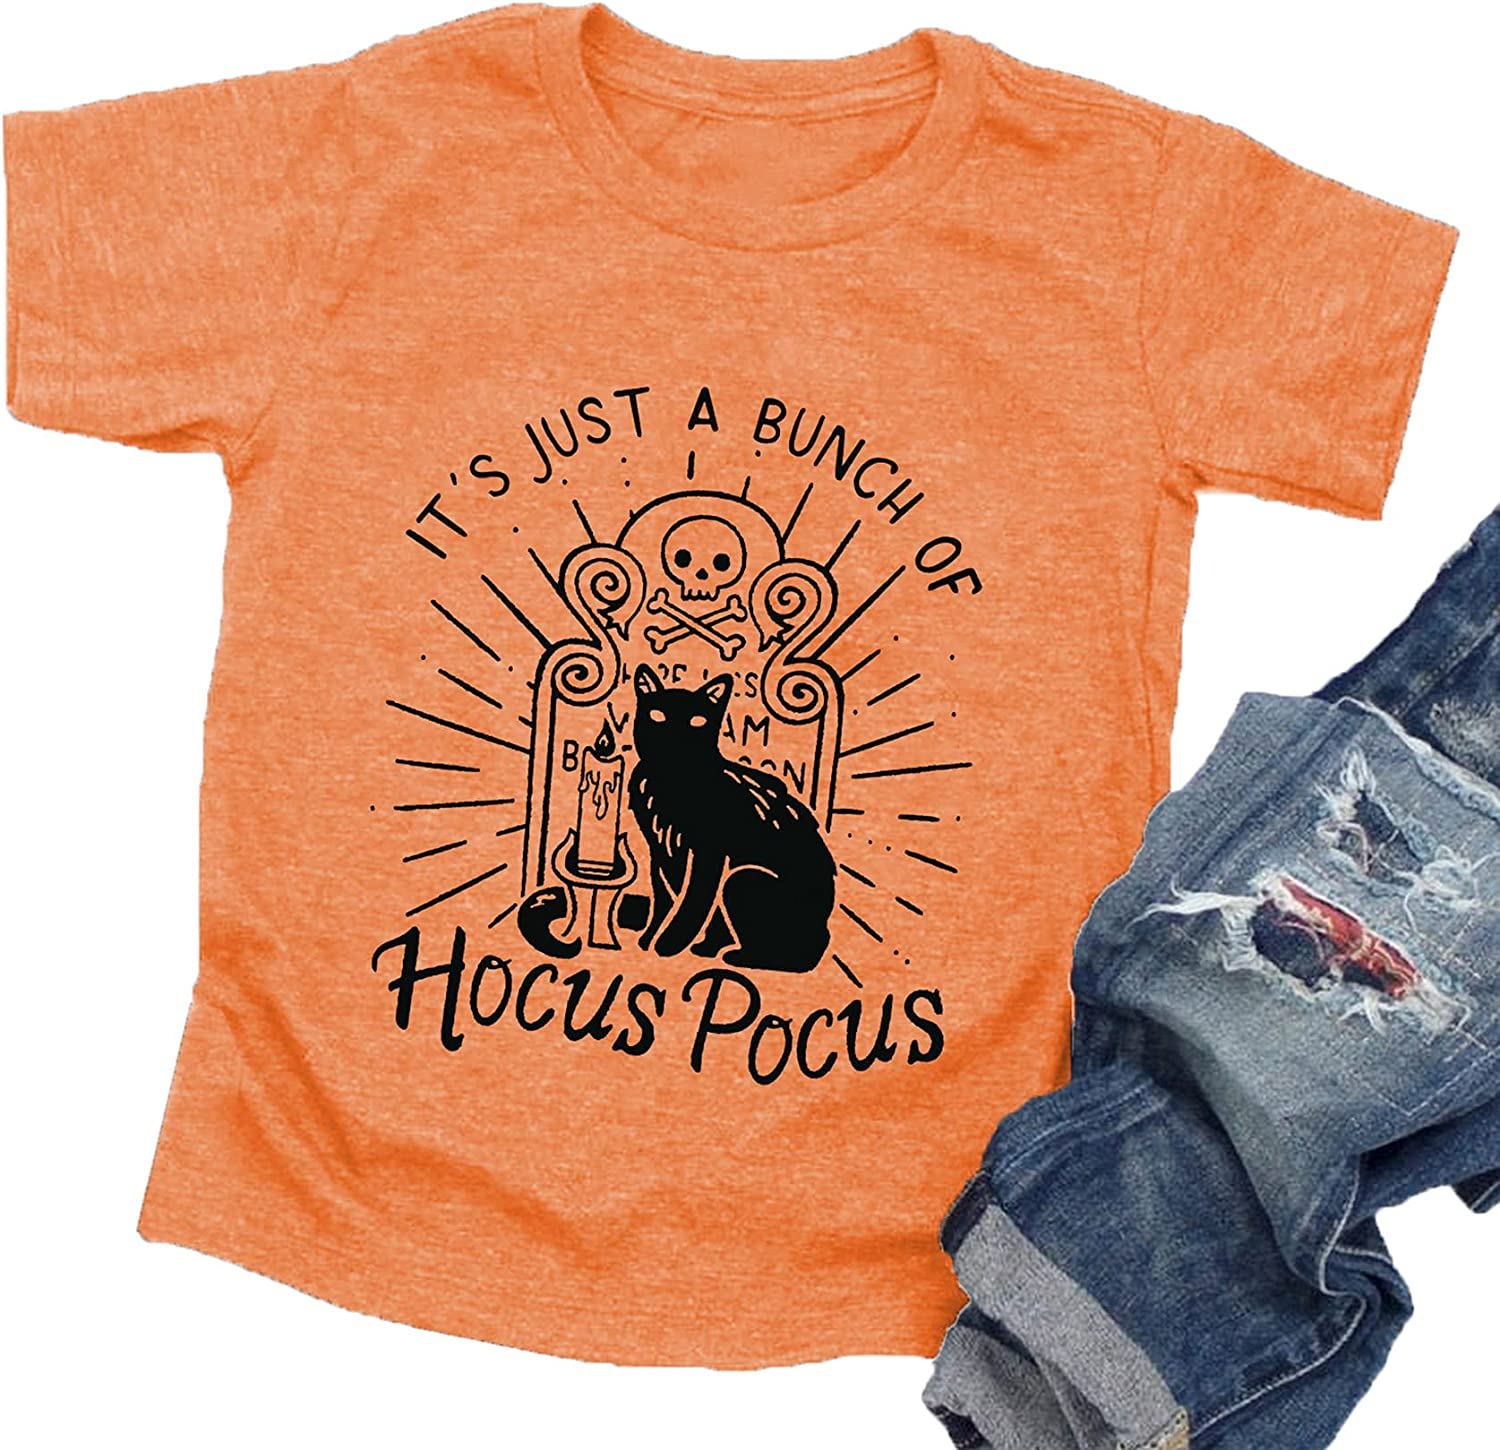 Halloween T Shirt Toddler Boys Girls It's Just A Bunch of Hocus Pocus Shirts Baby Graphic Tees Tops